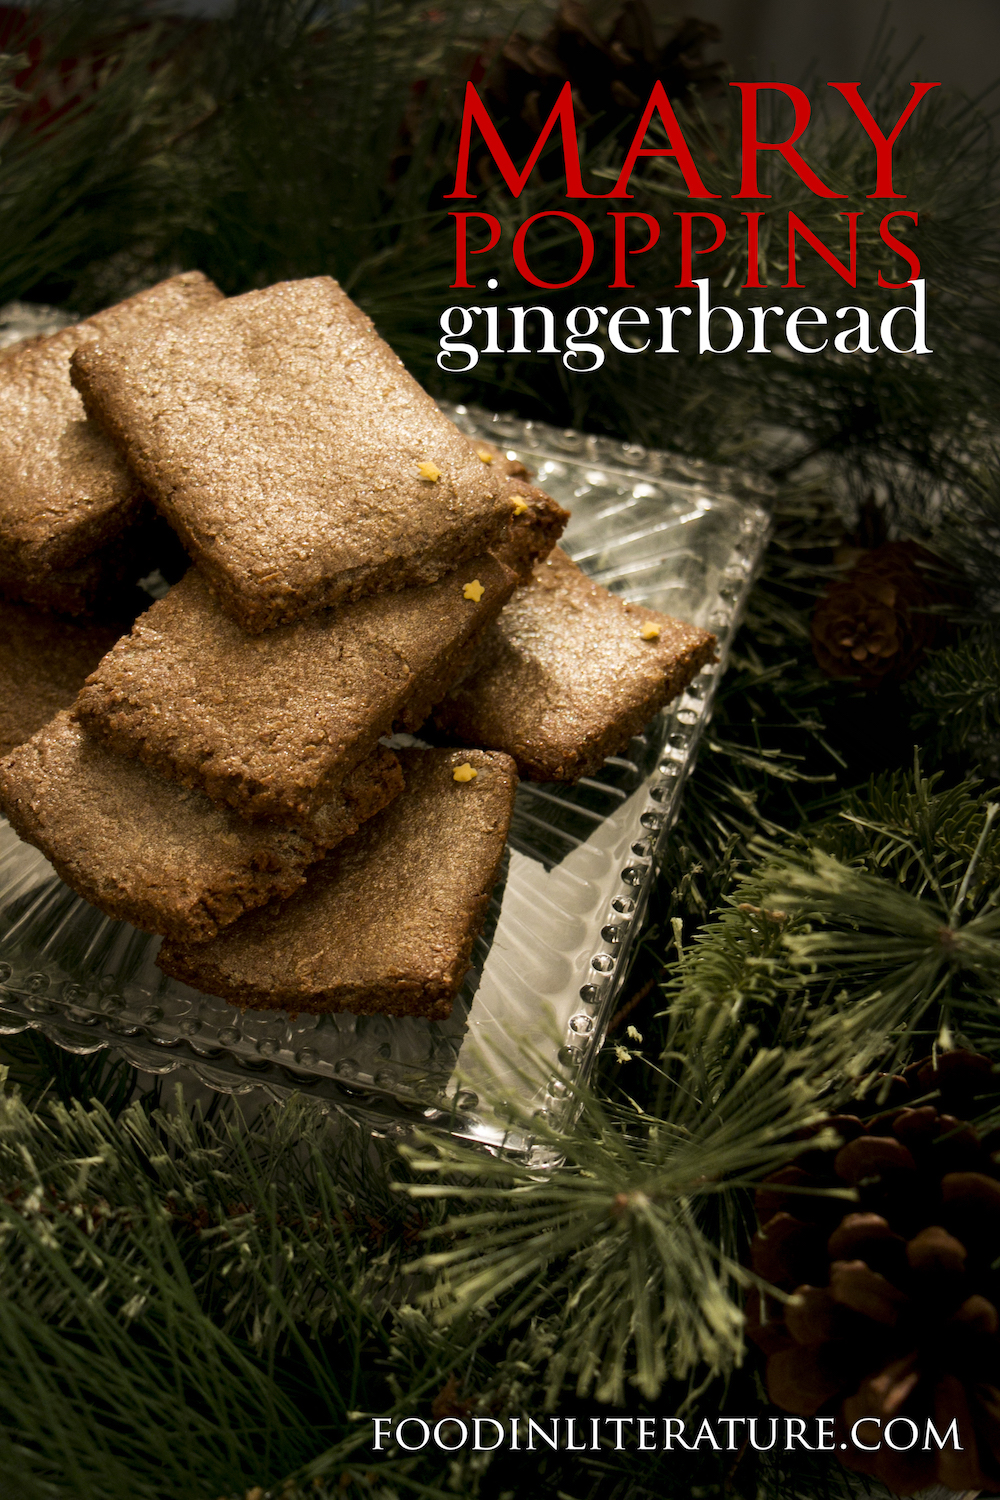 Make up a batch of gingerbread inspired by the magical Mary Poppins this Christmas! It's the perfect food gift for any book lover.